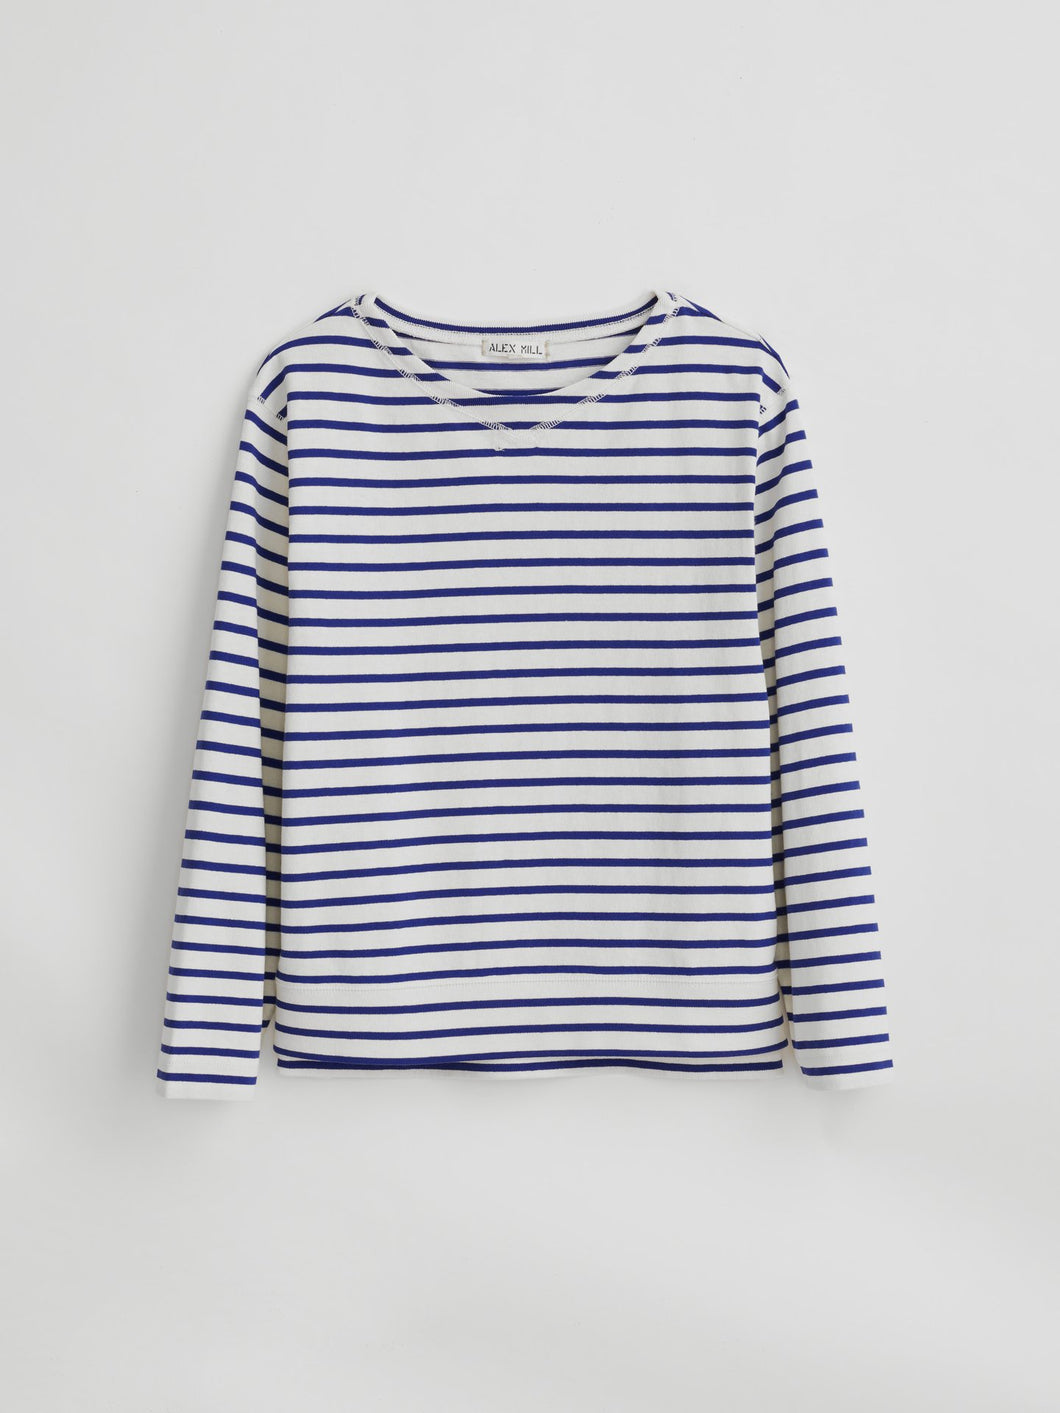 Lakeside Striped Tee - Natural/Blue